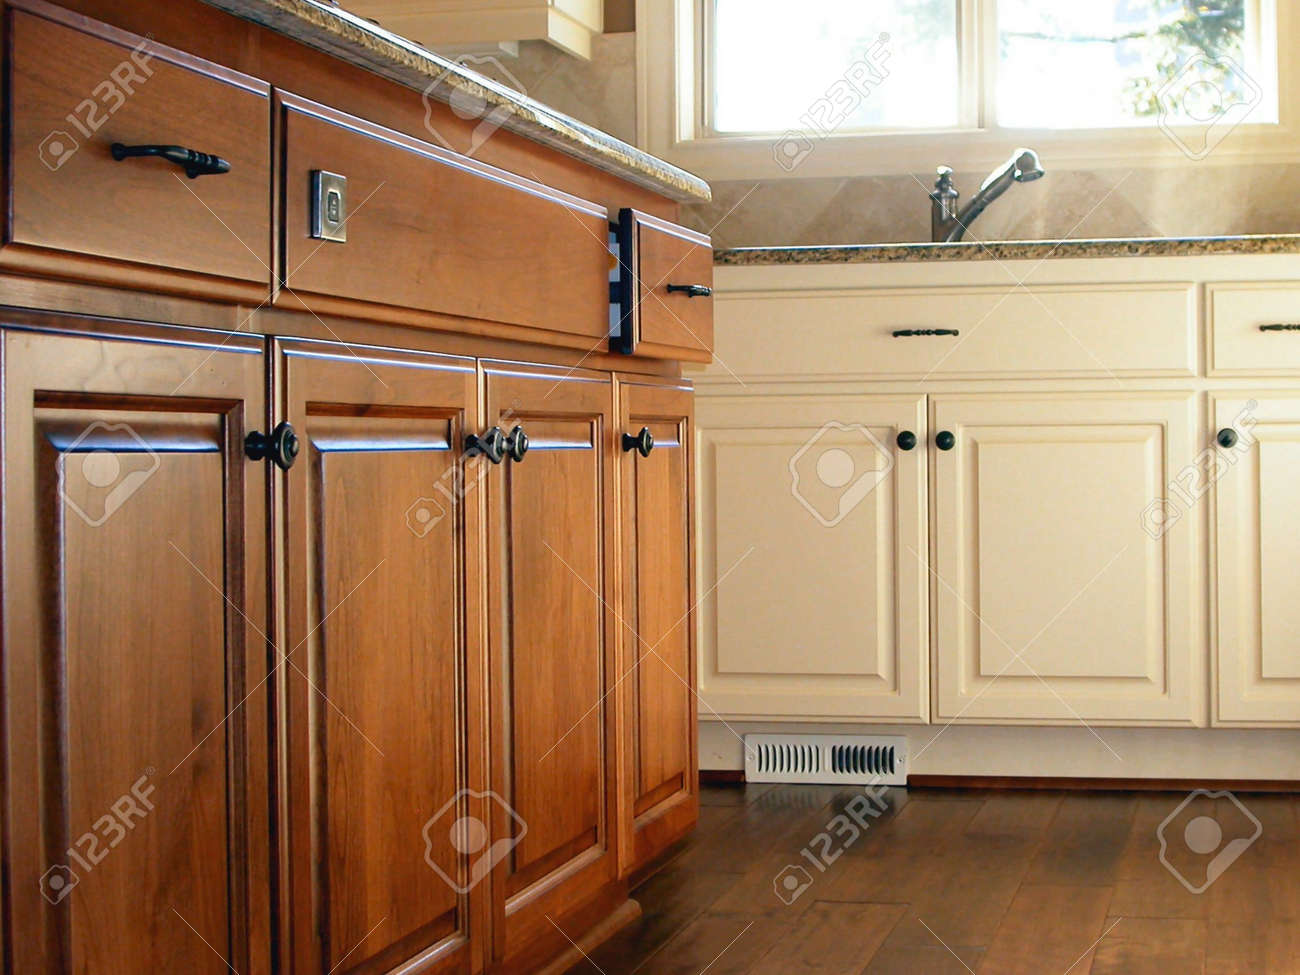 Kitchen Cabinets Stock Photo - 4725427